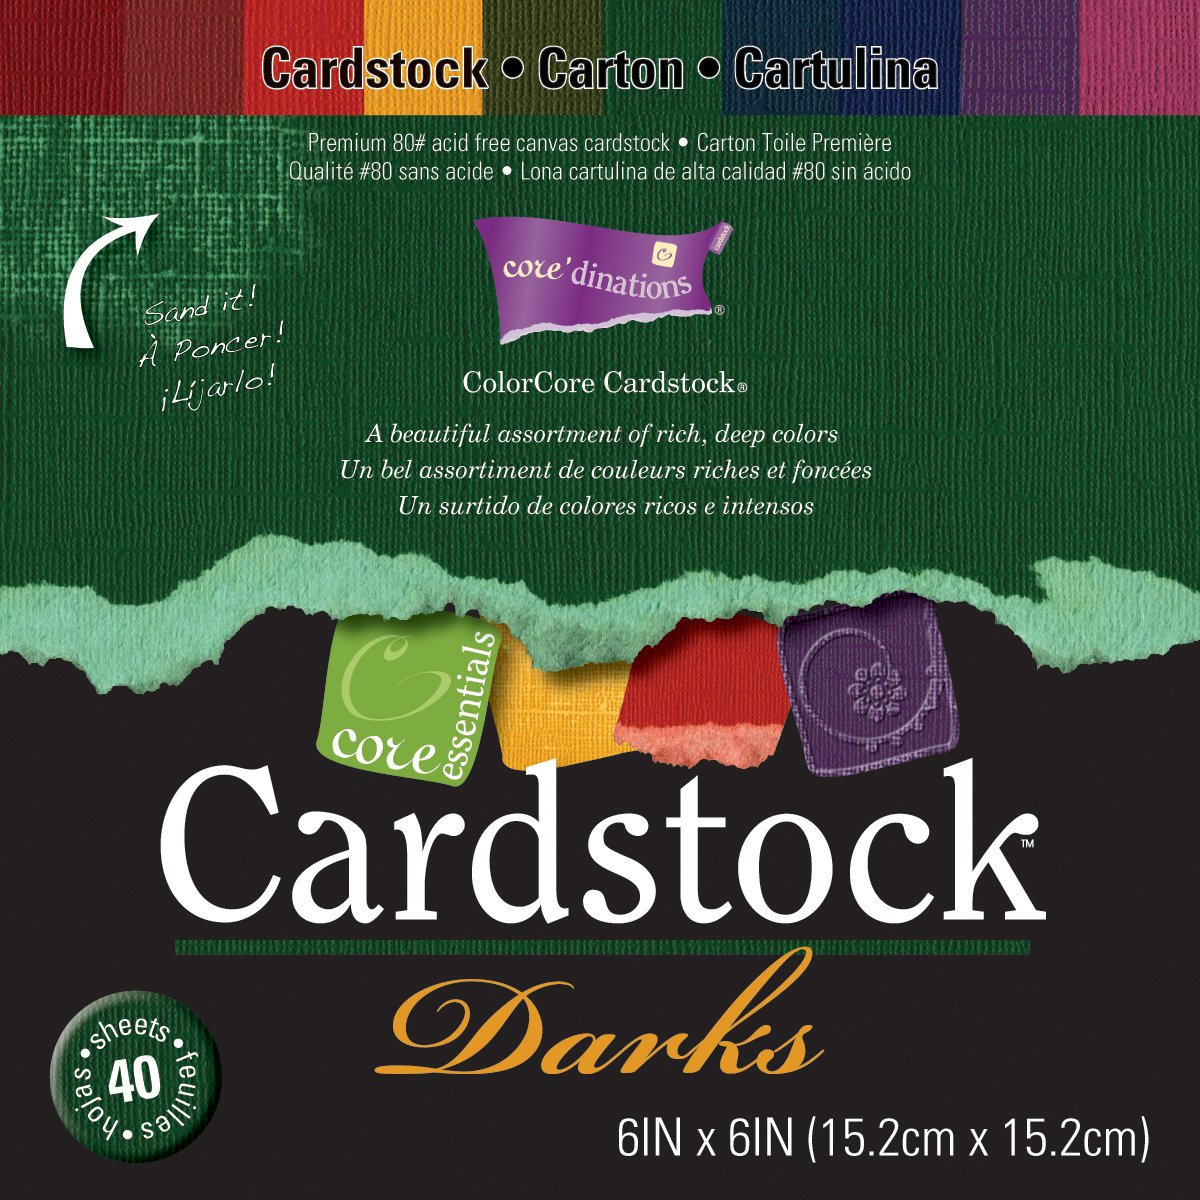 Darice Gx-3000-11 30-Pack Core'dinations Core Cardstock Paper Sheets, Pastels, 4-1/4x5-1/2-Inch